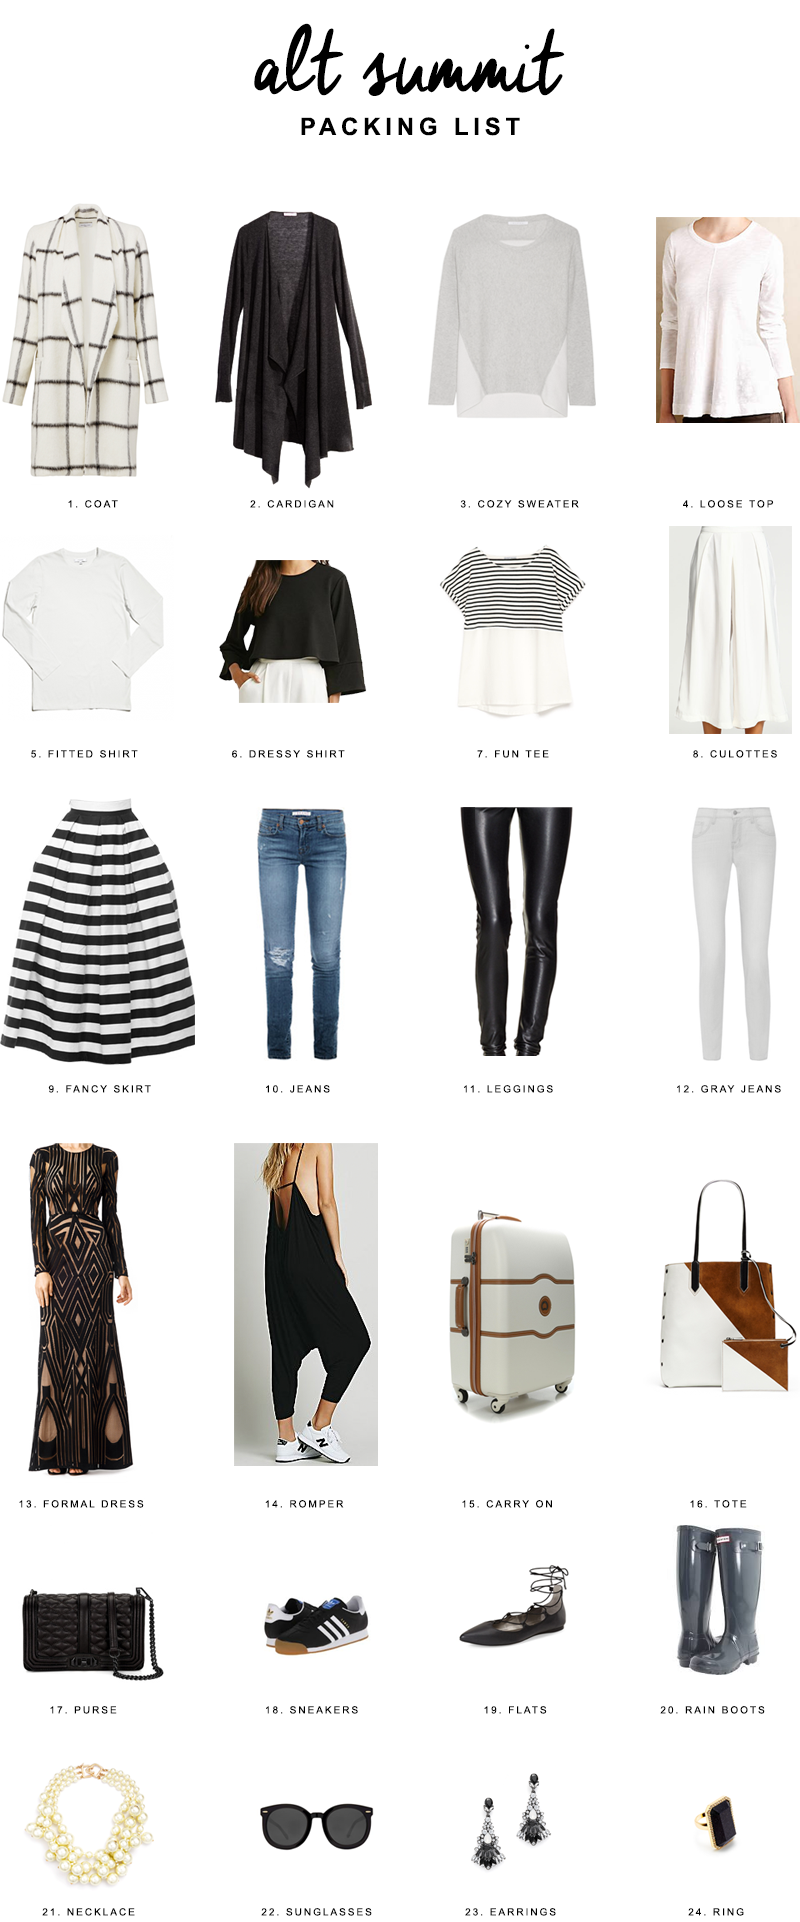 Reichel Broussard | Copy Cat Chic | What to pack for Alt Summit